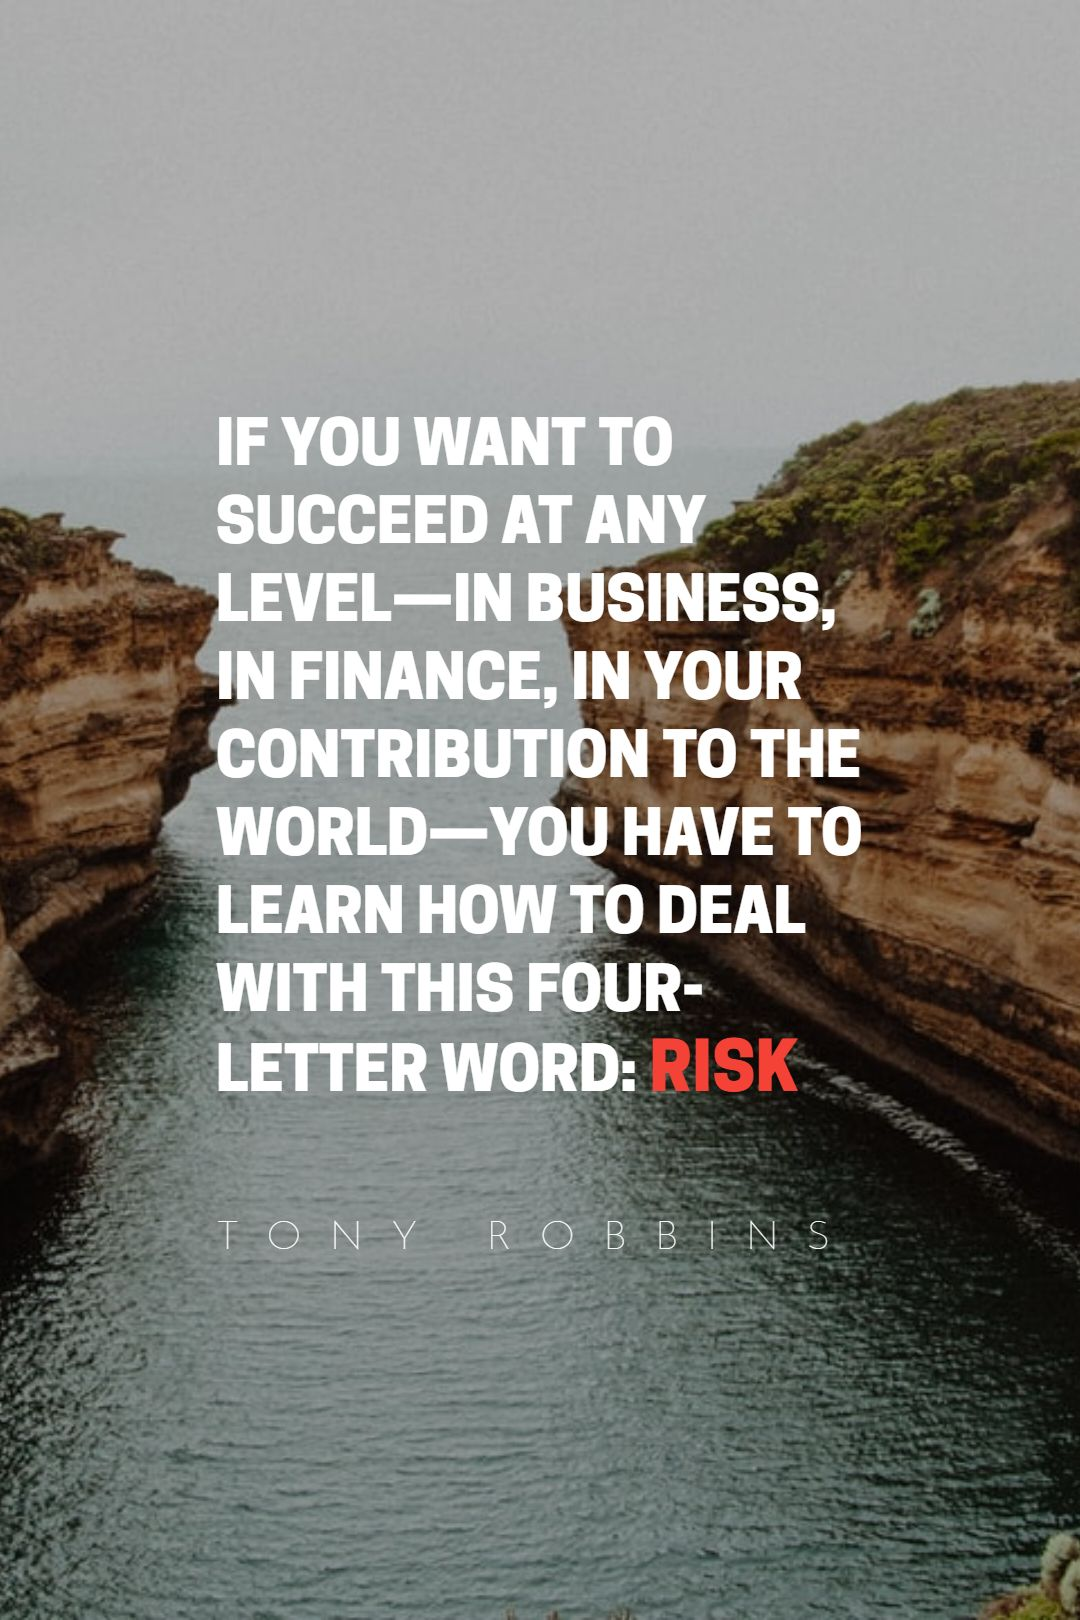 Quotes image of If you want to succeed at any level—in business, in finance, in your contribution to the world—you have to learn how to deal with this four-letter word: risk